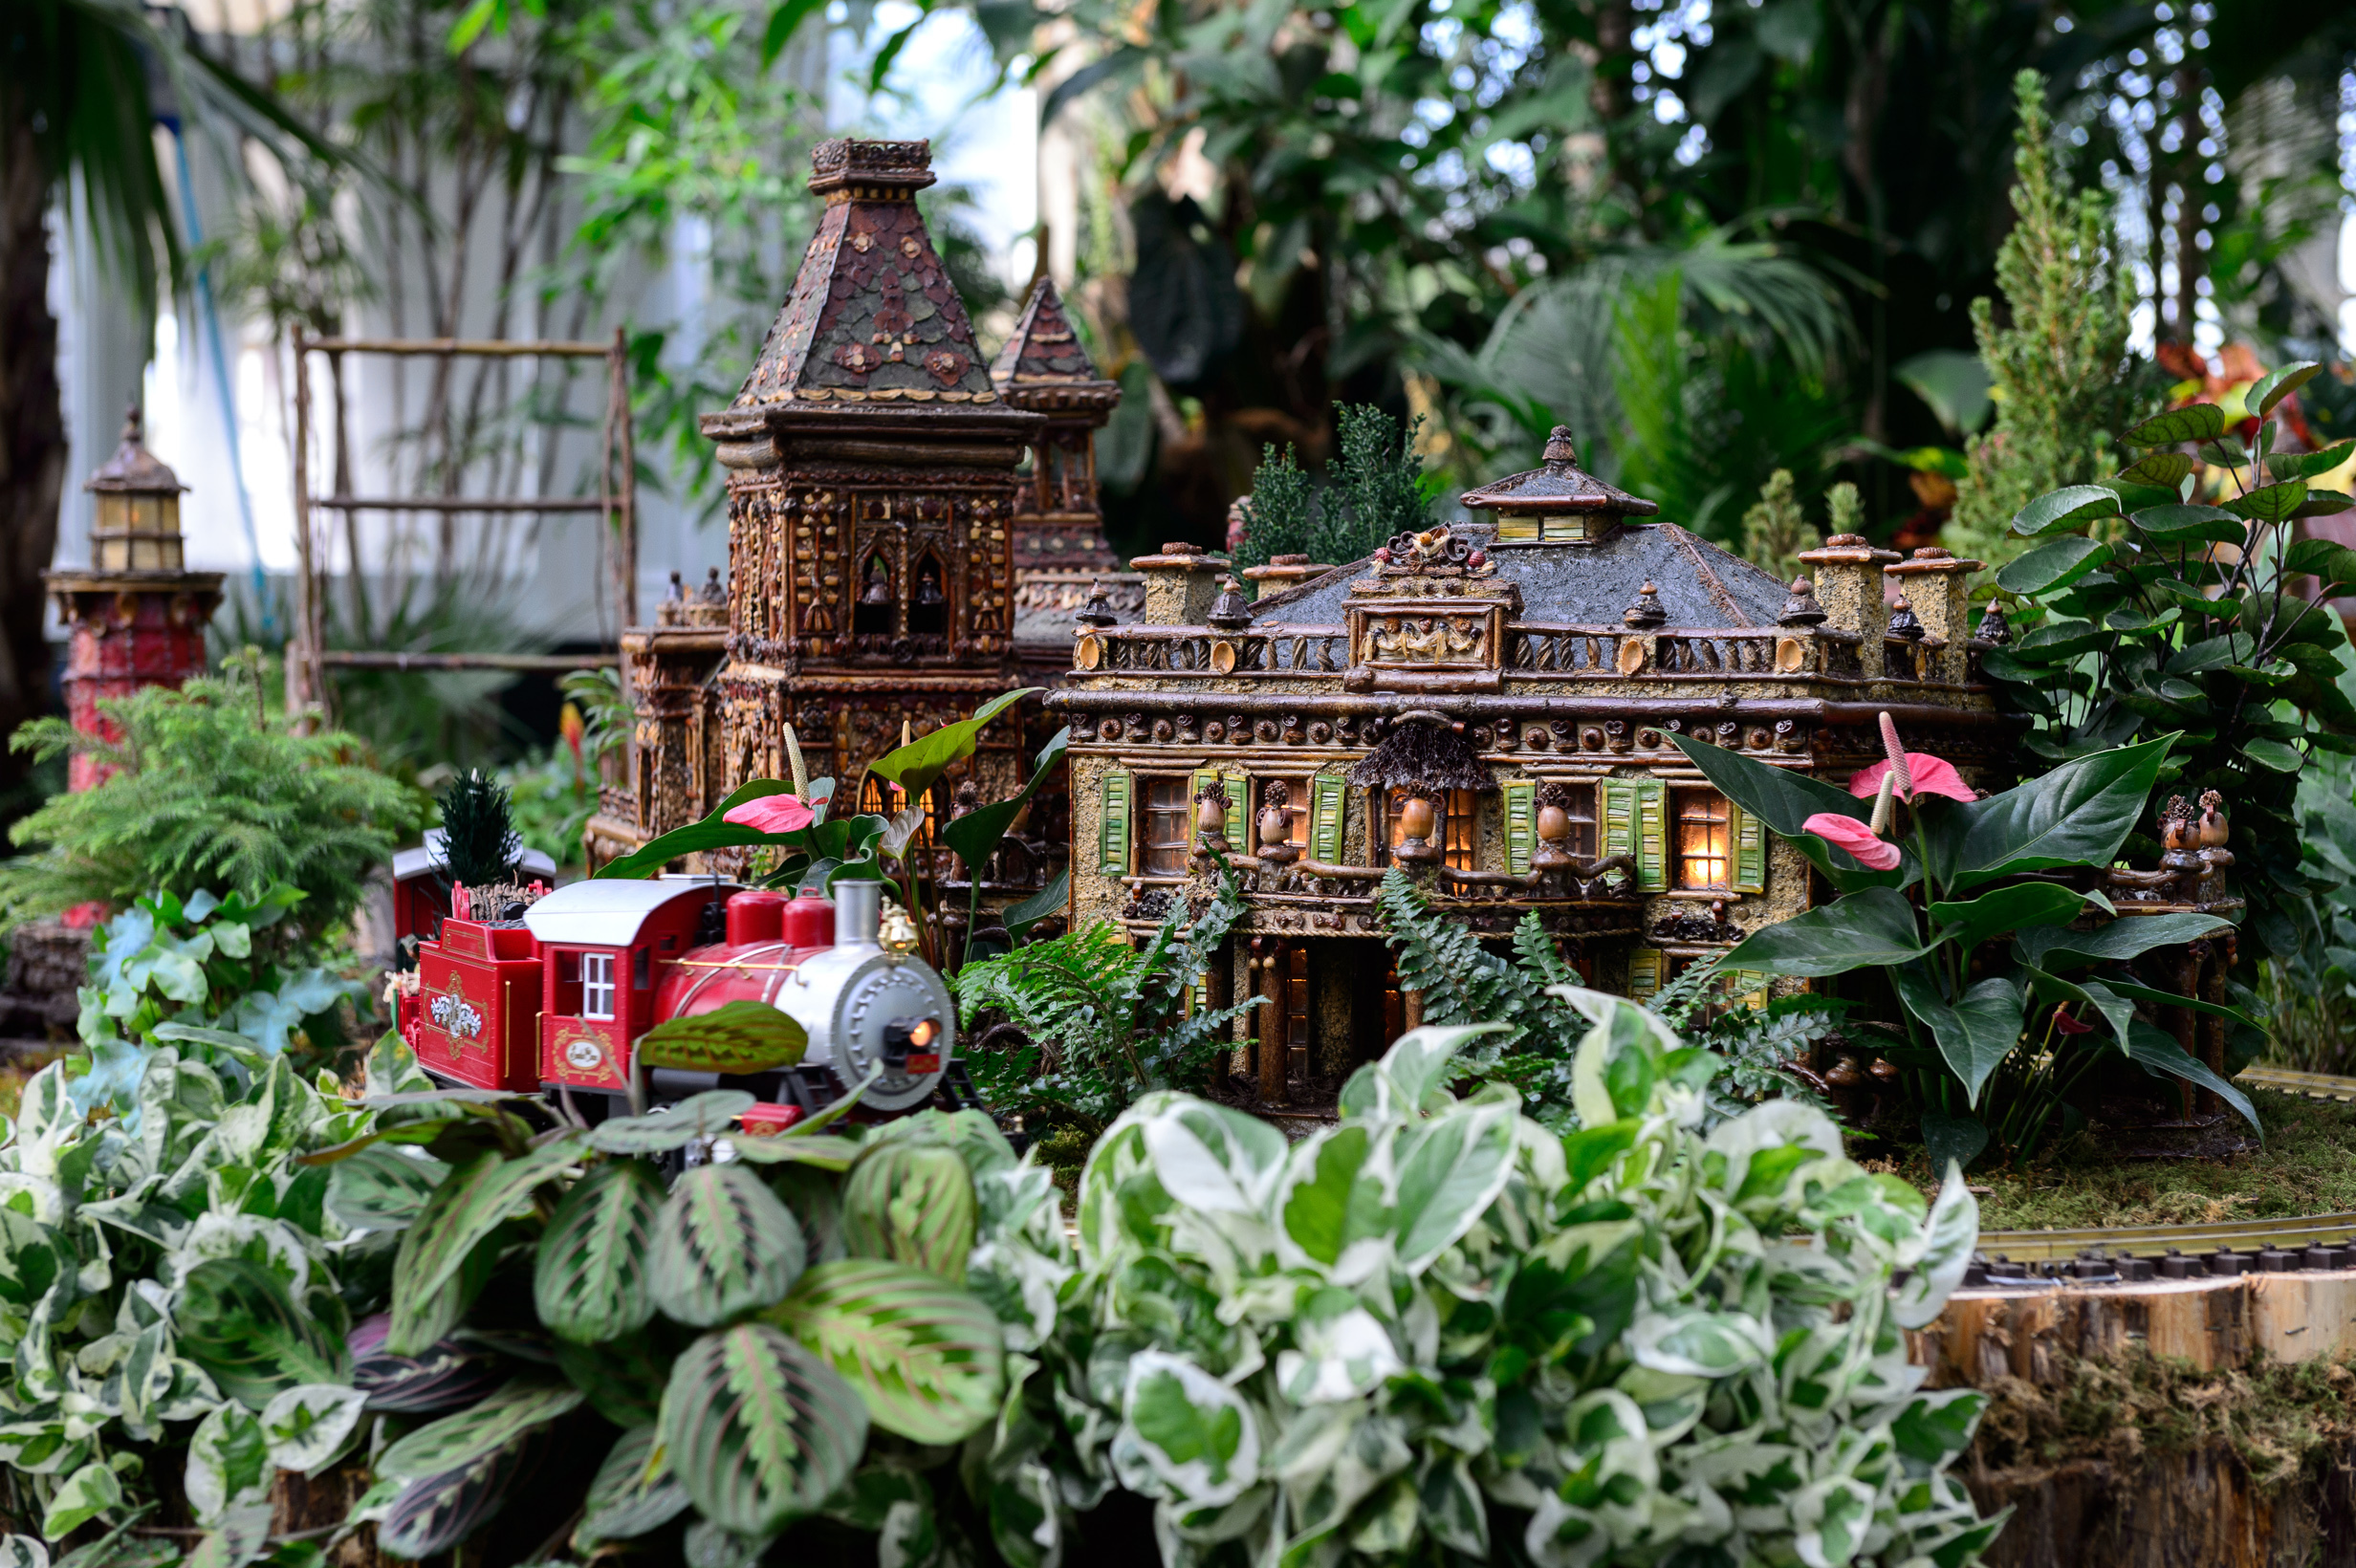 Holiday train shows and train rides for nyc families Botanical garden train show